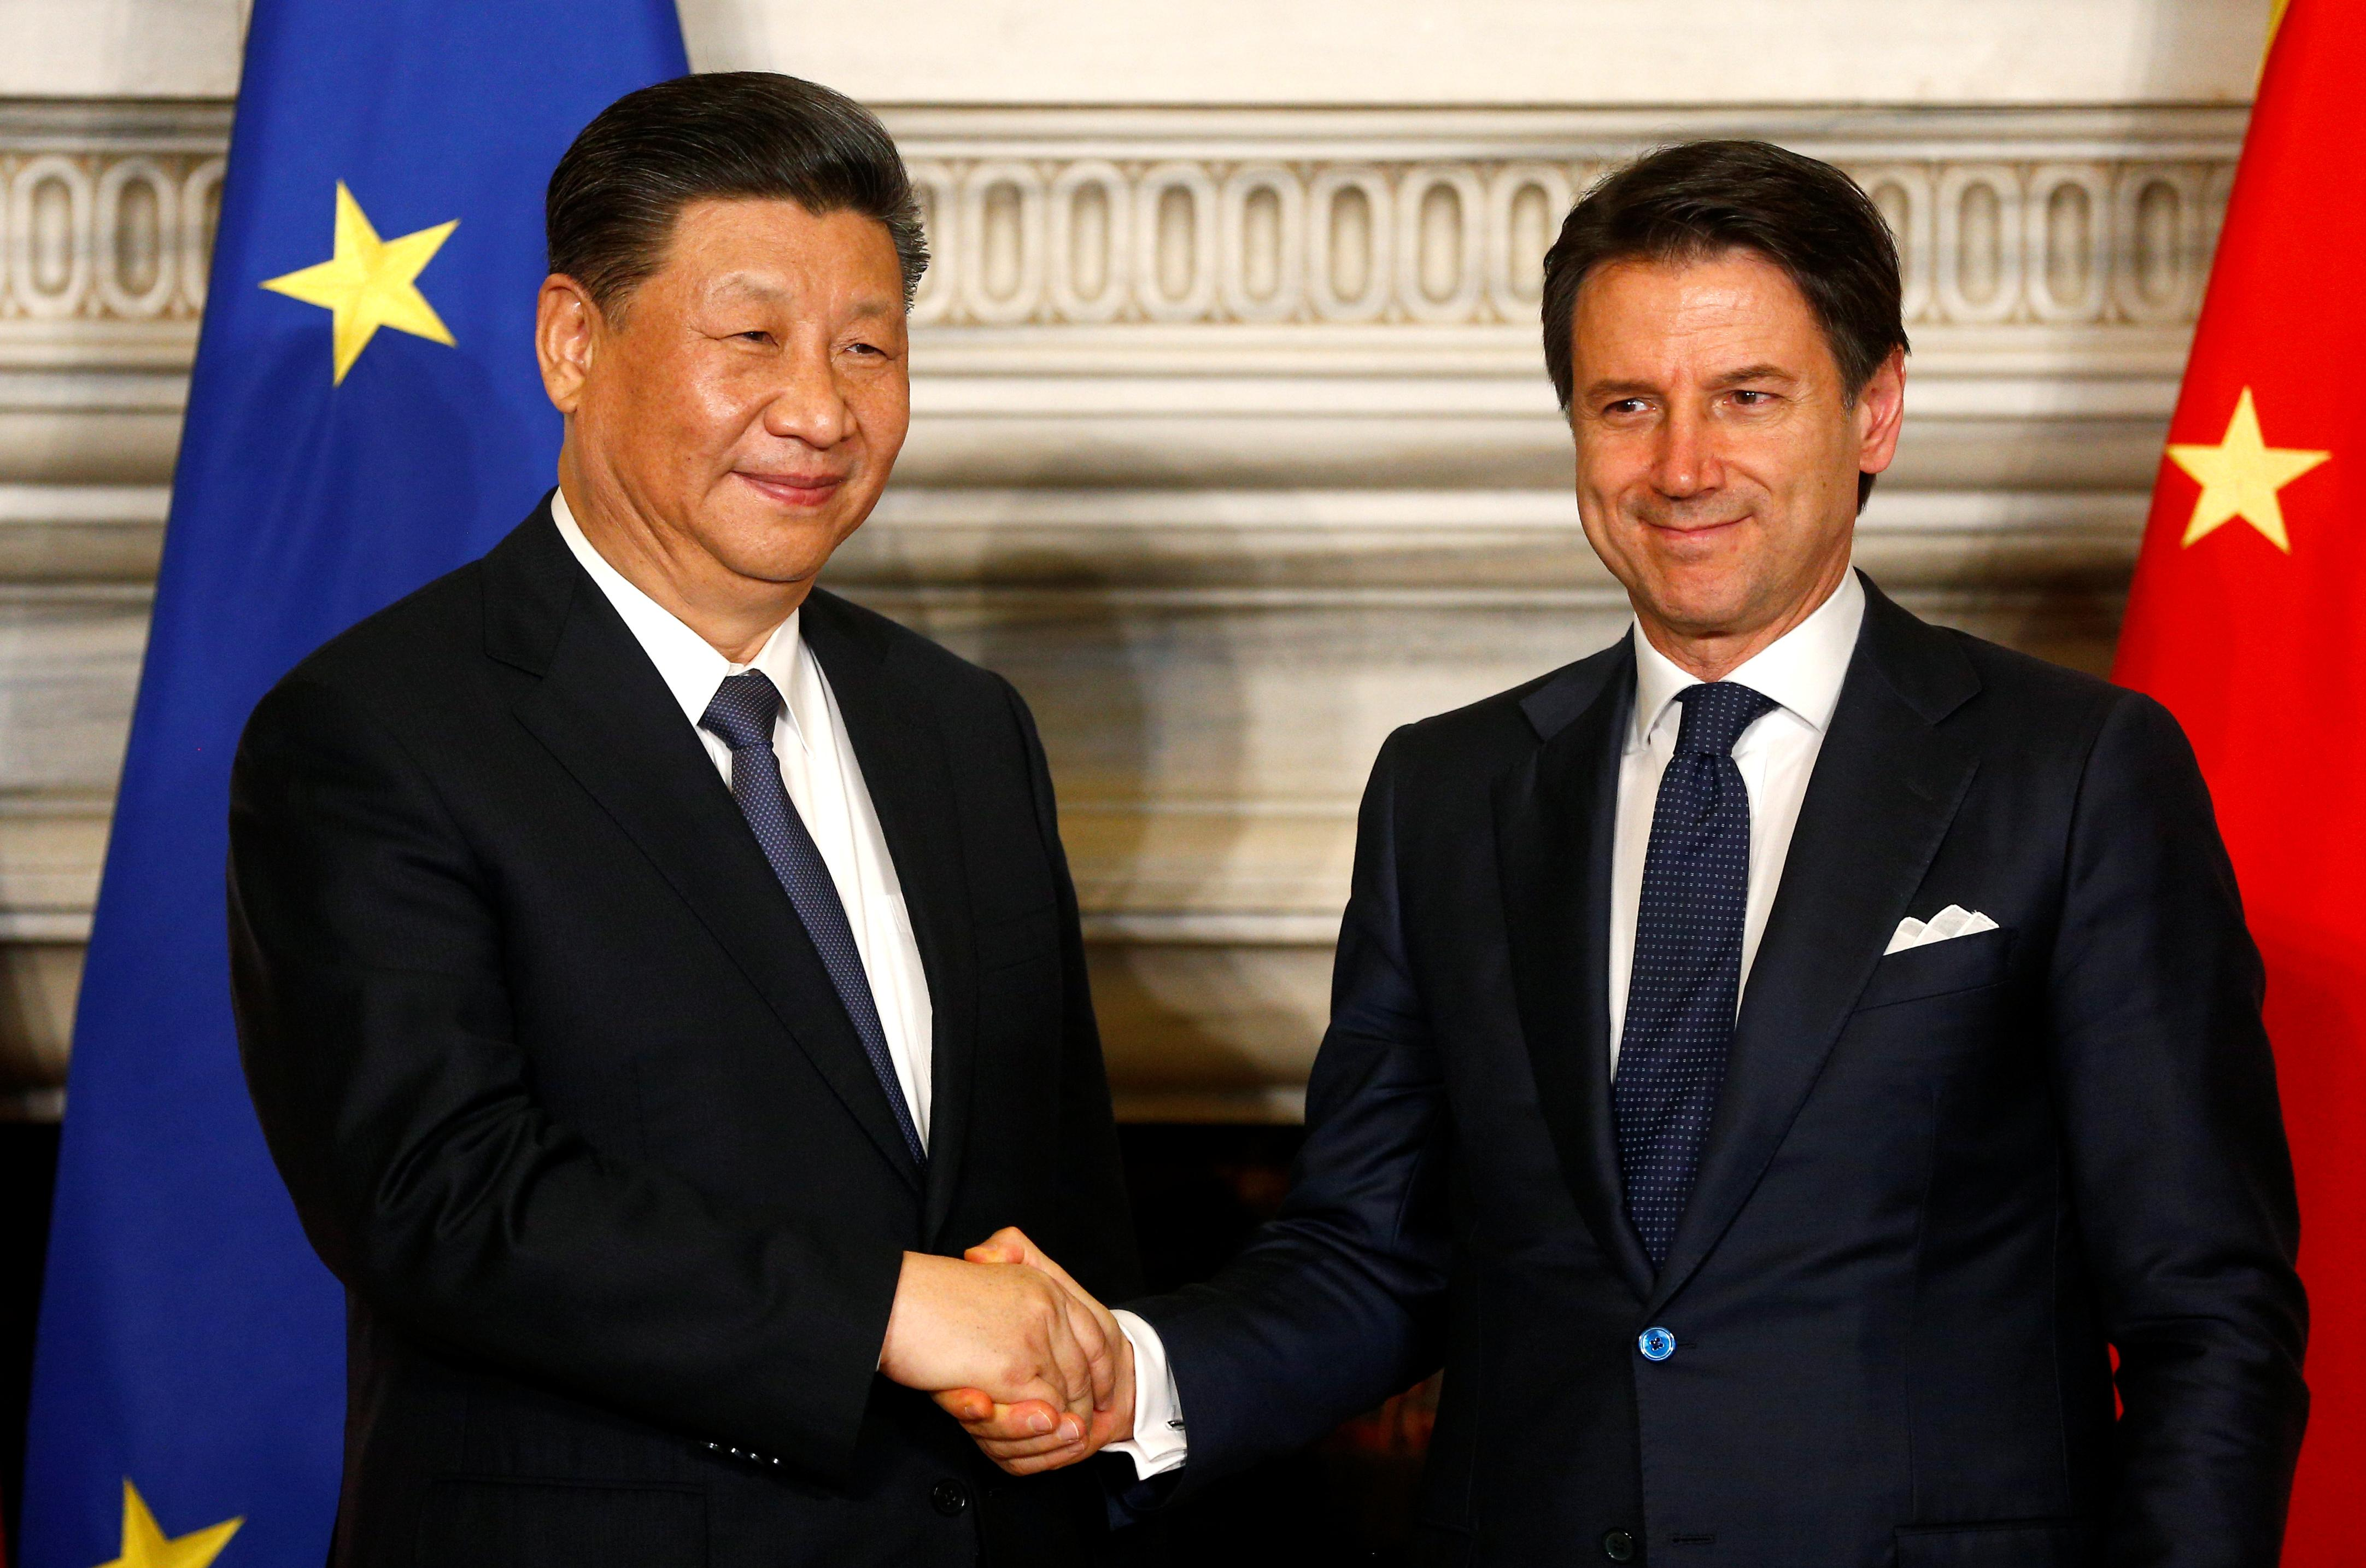 Italy's role in China's Belt and Road Initiative